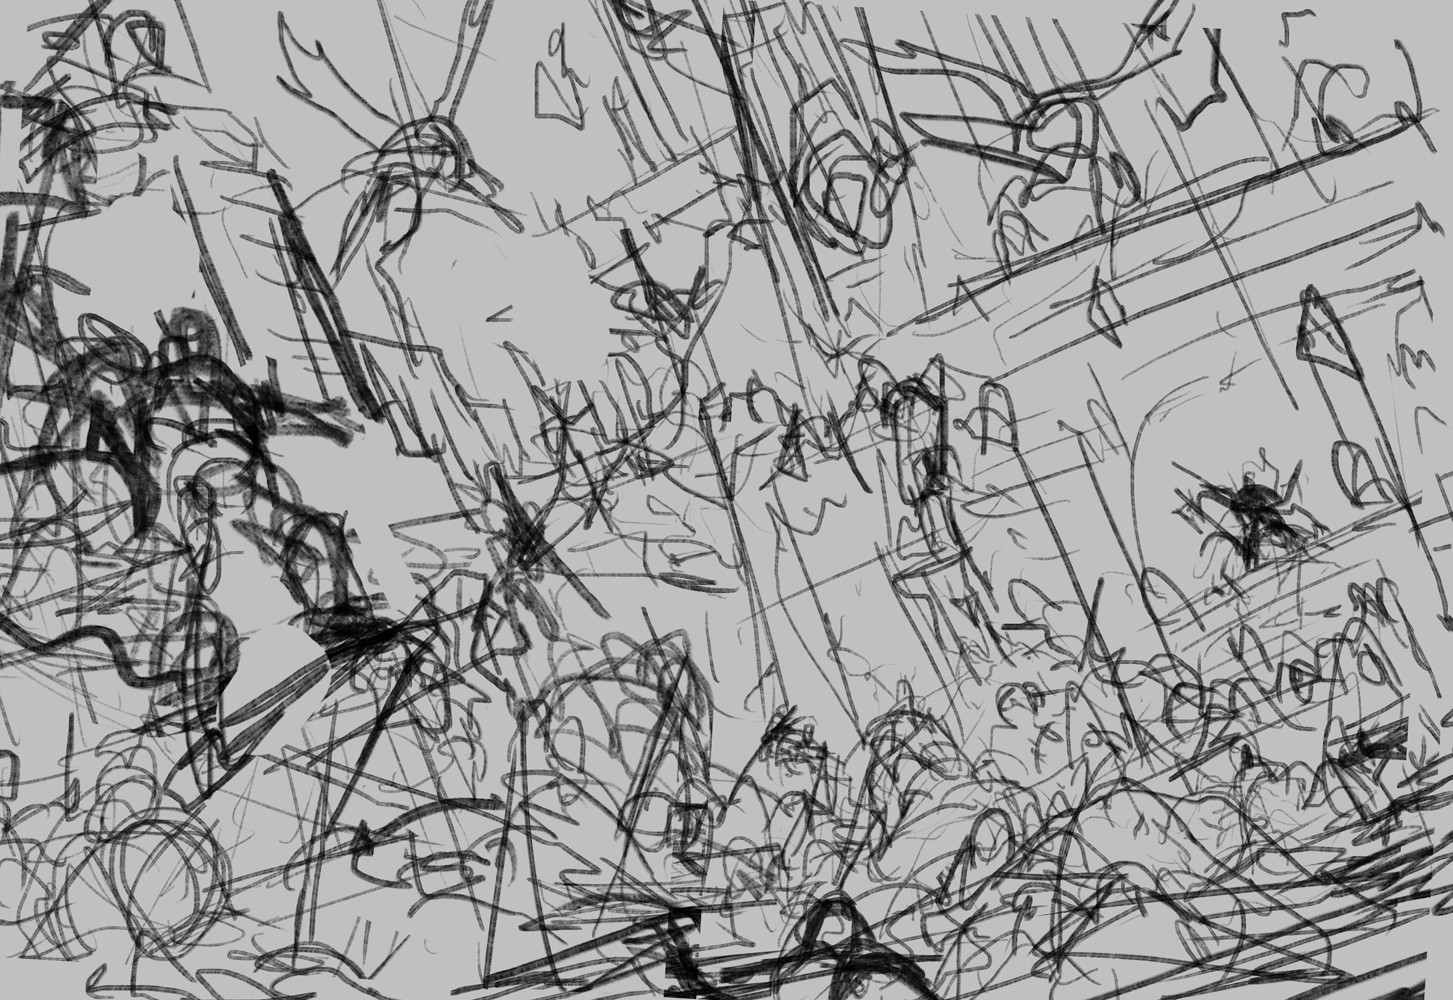 my process is never pretty...especially with battle scenes, 1st attempt on the comp idea i have, i always start with either scribbles, or just siluets, oh and i usually make sounds when im drawing like this